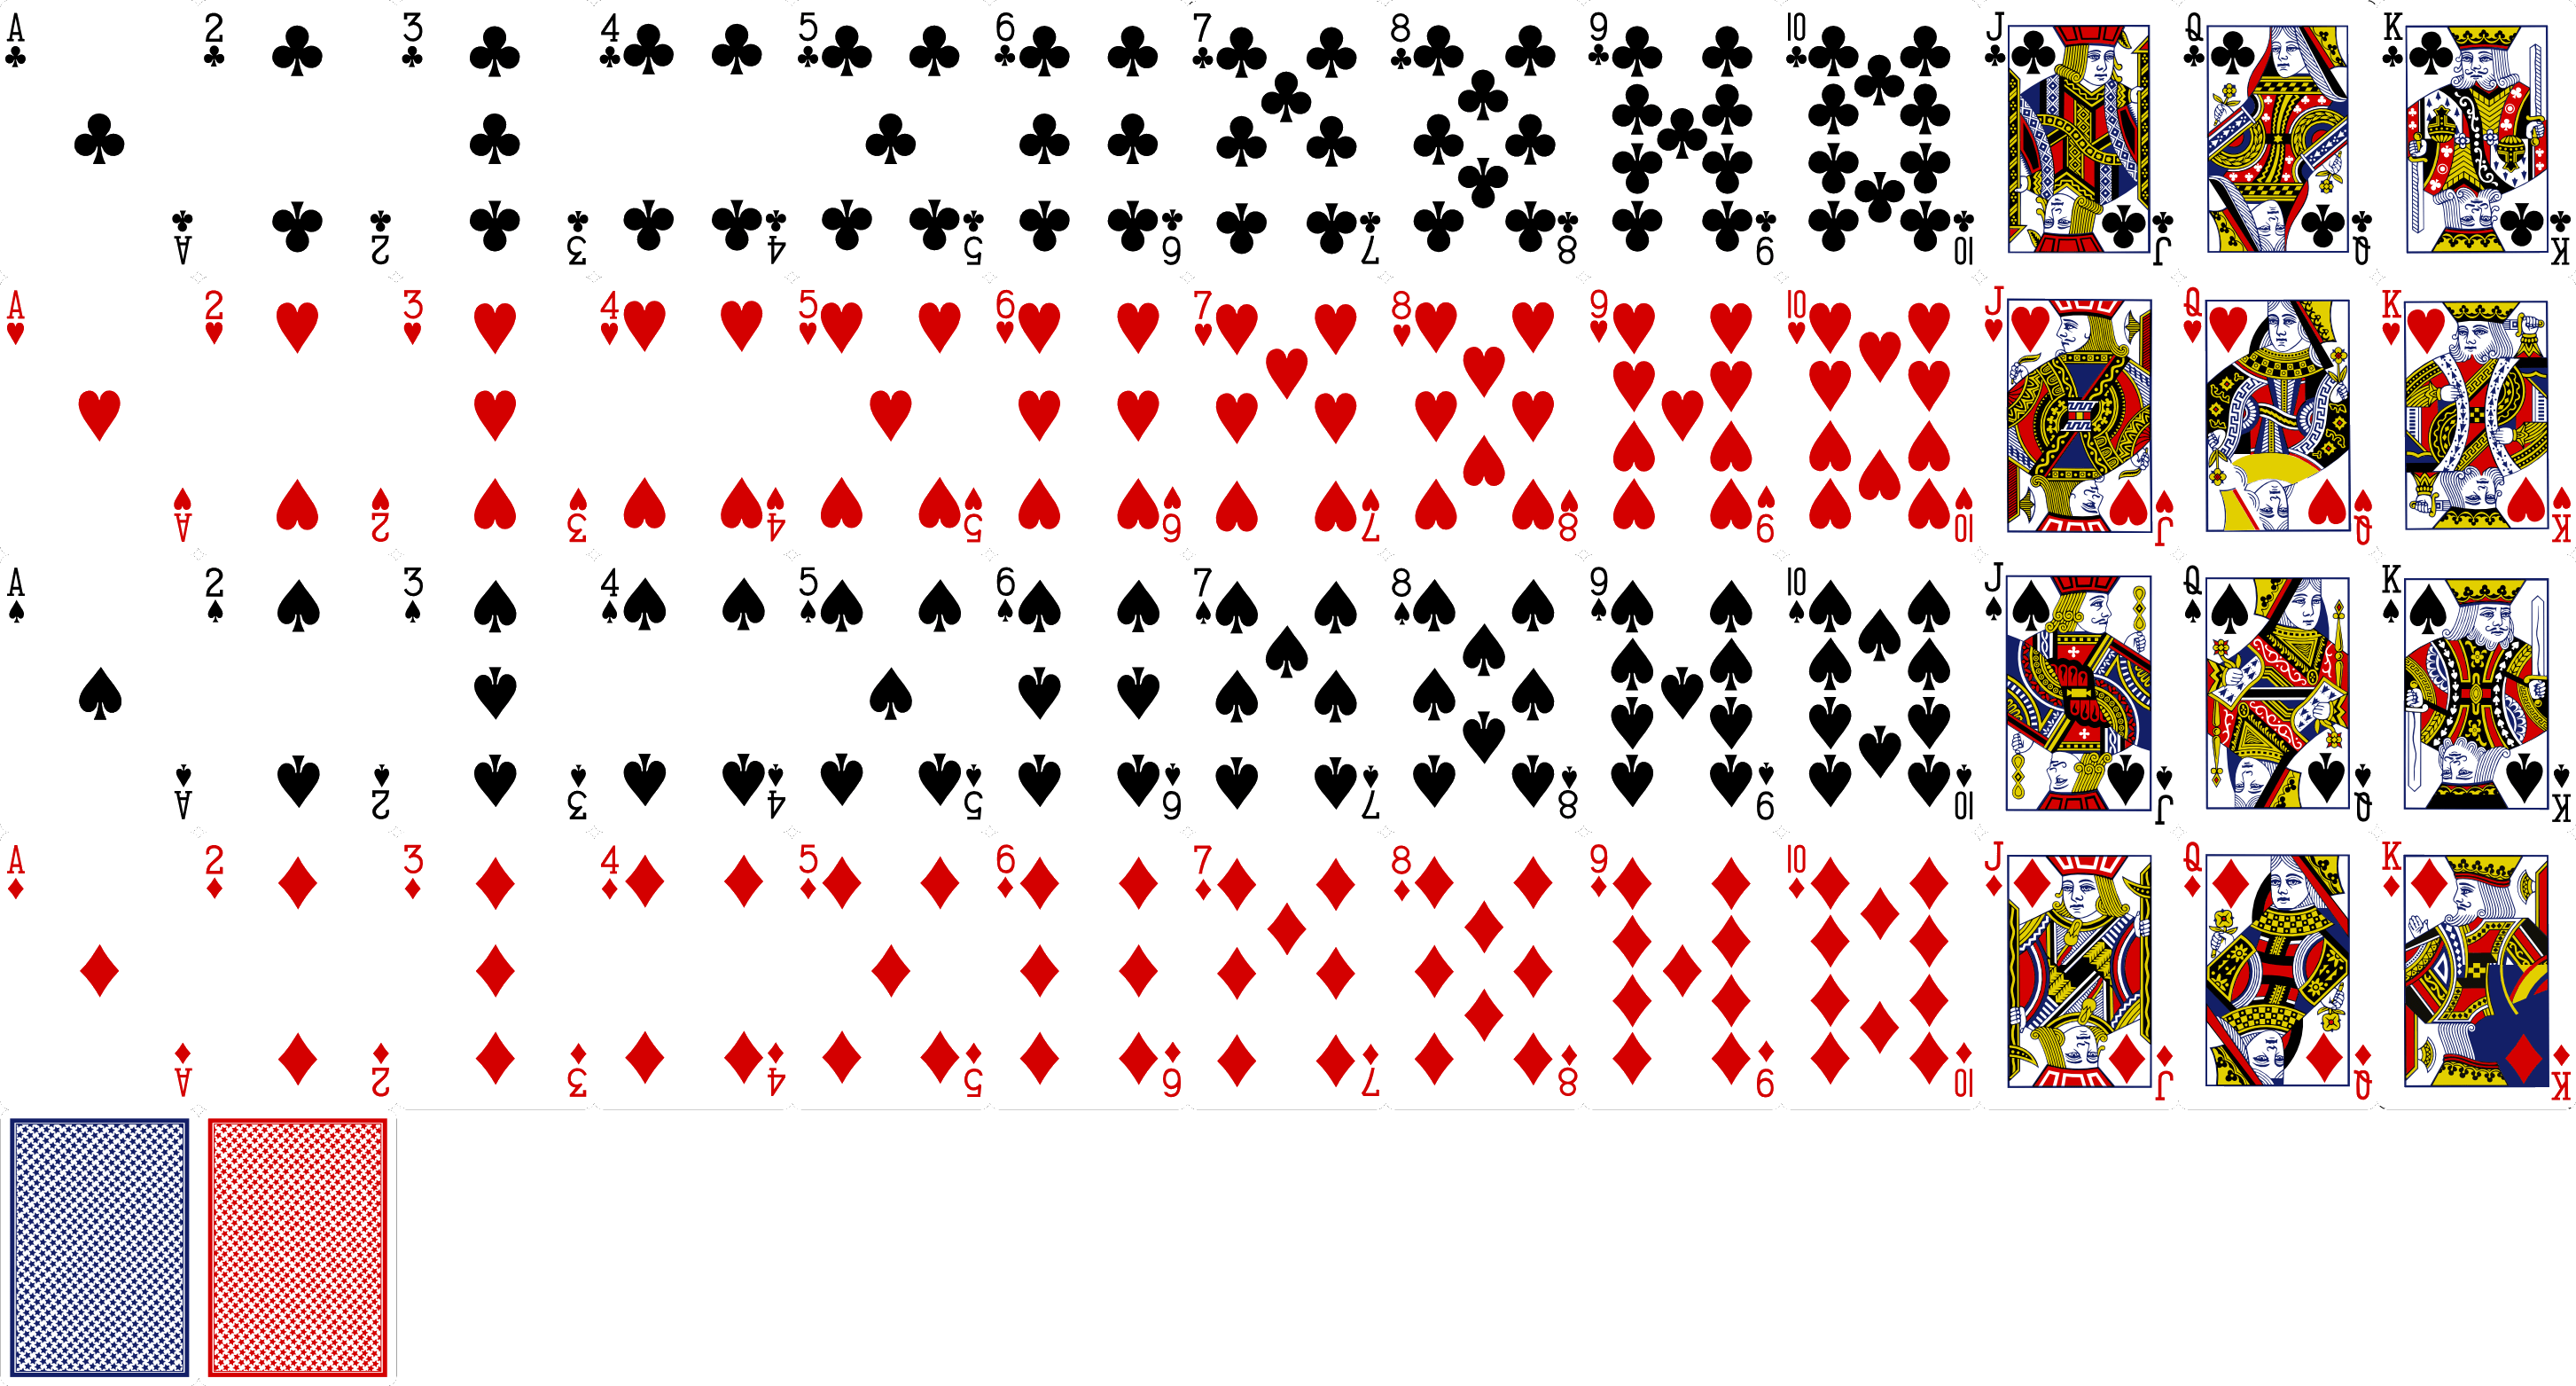 spider solitaire.org